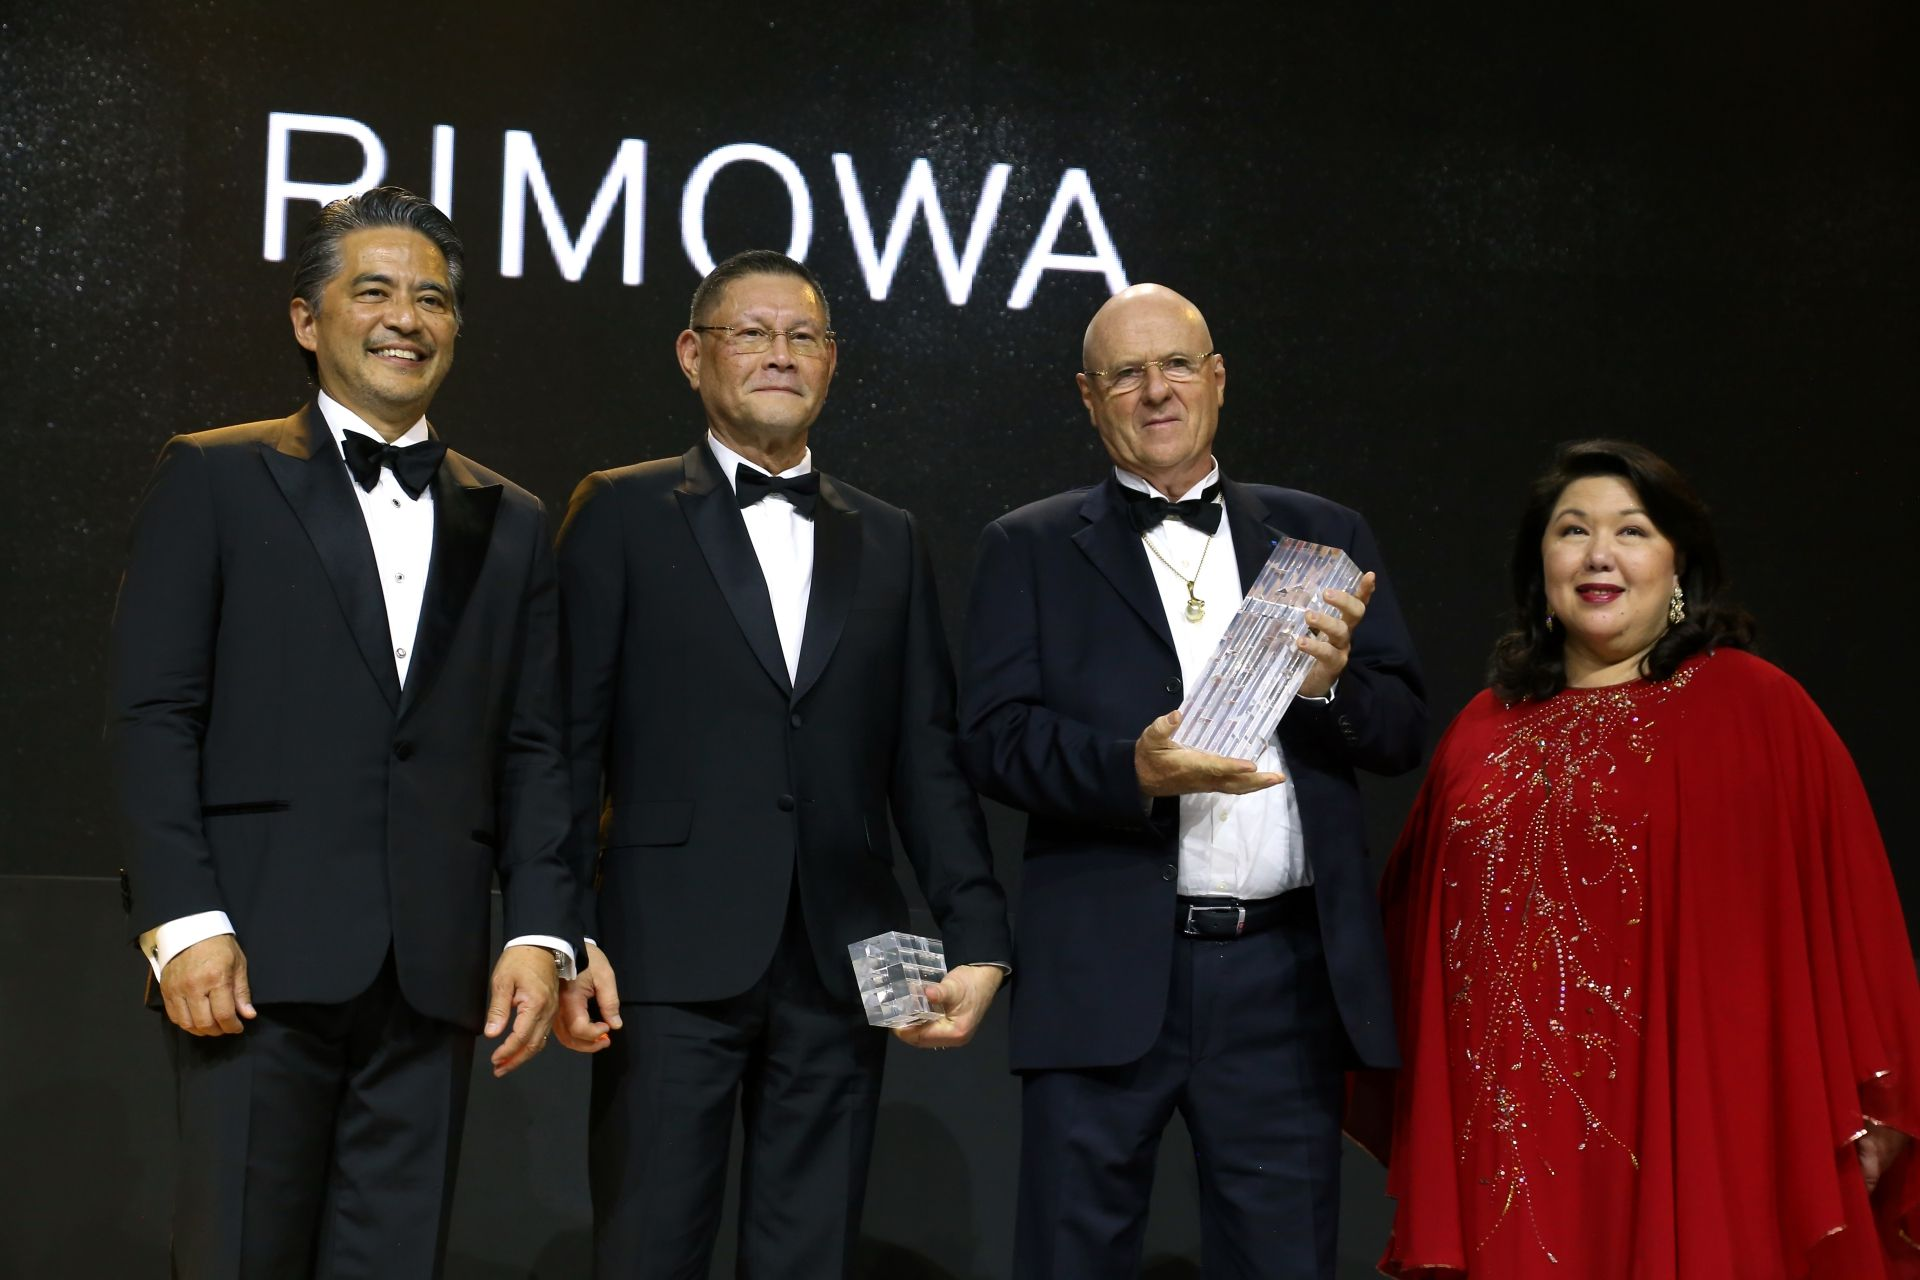 Diamond Awardees Manuel Cojuanco and Jacques Branellec smile for the cameras. | The diamond awardees also received a gift courtesy of Rimowa.